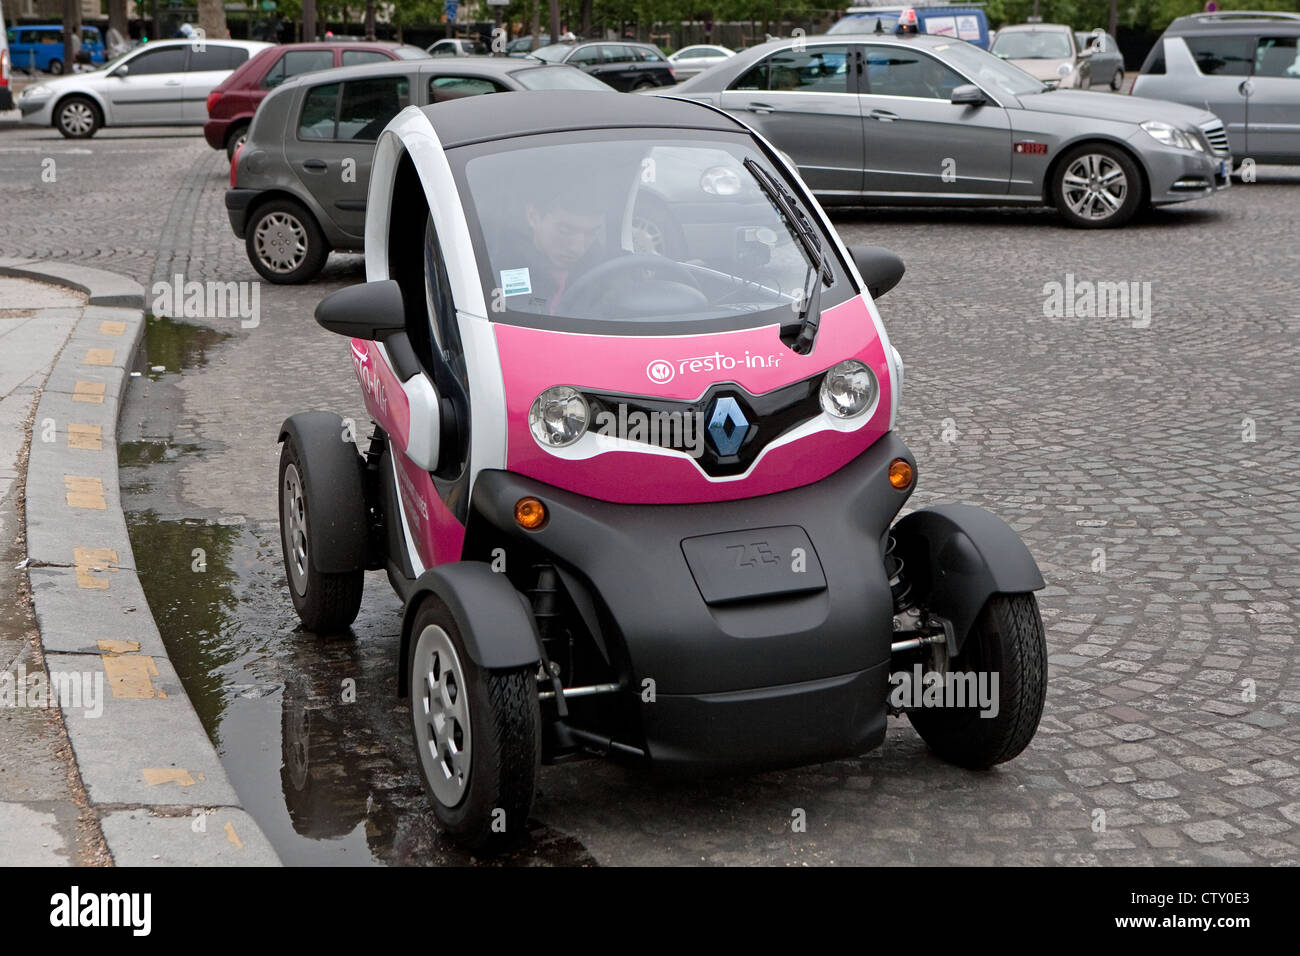 https://c8.alamy.com/comp/CTY0E3/a-renault-twizy-passing-by-the-arc-de-triumph-in-paris-france-CTY0E3.jpg